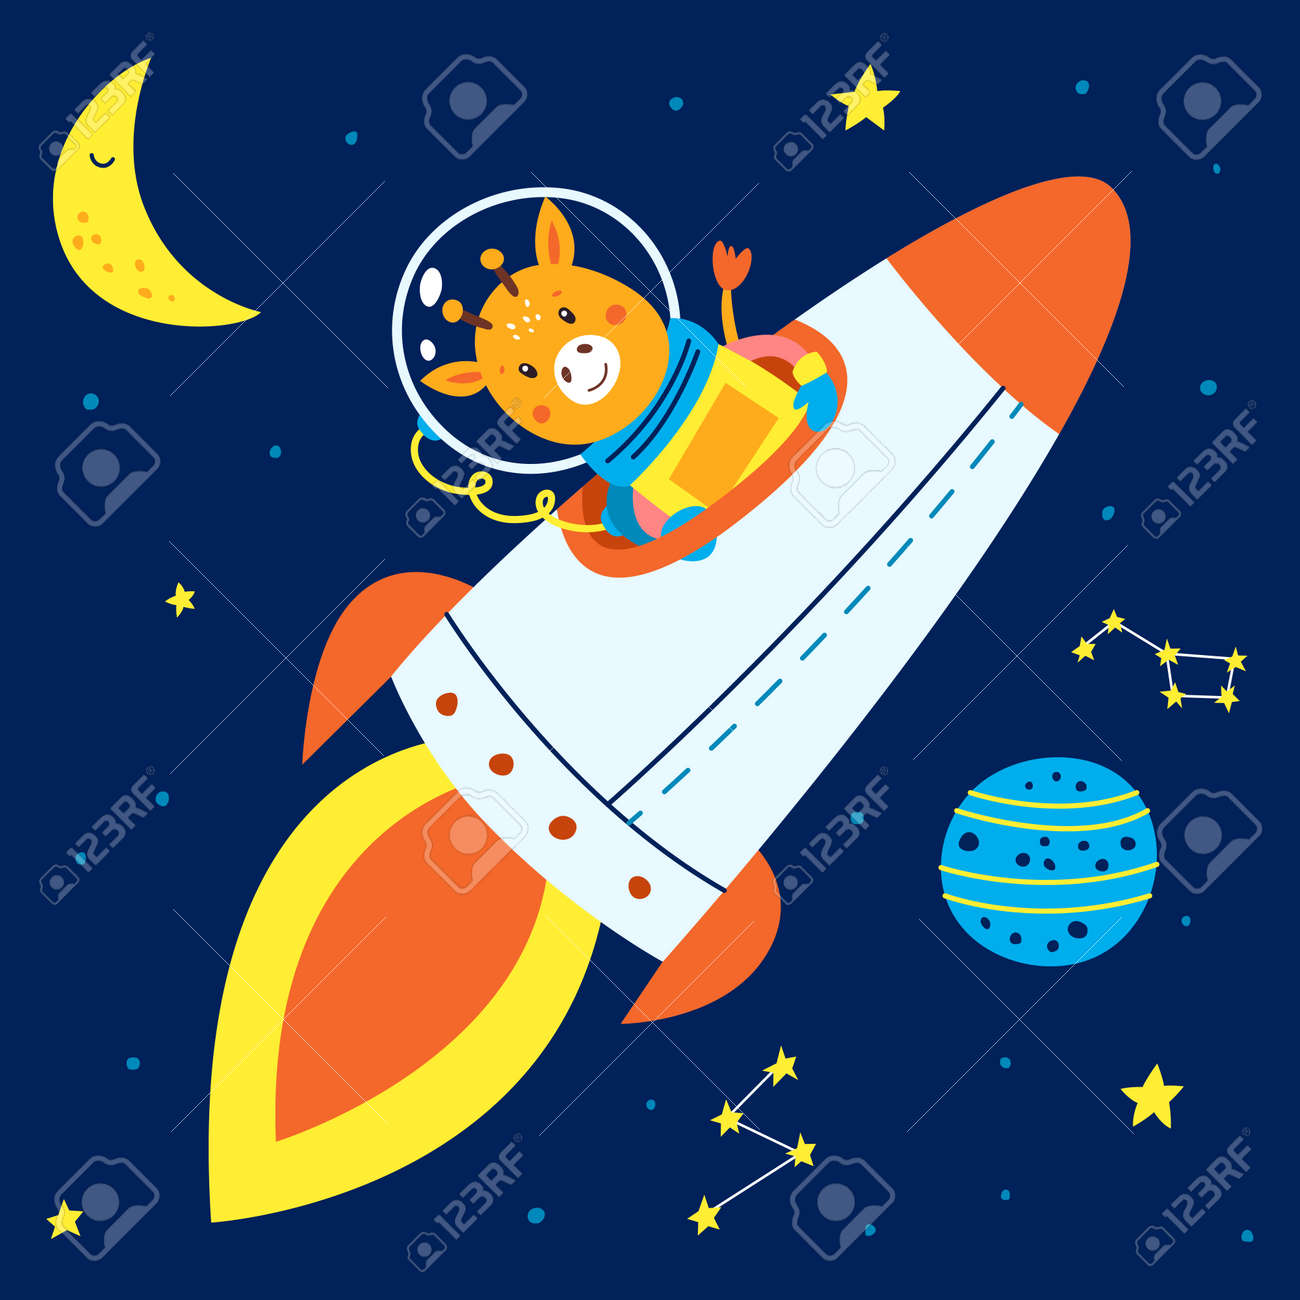 Animals in space. Vector illustration on a blue background. - 169771674